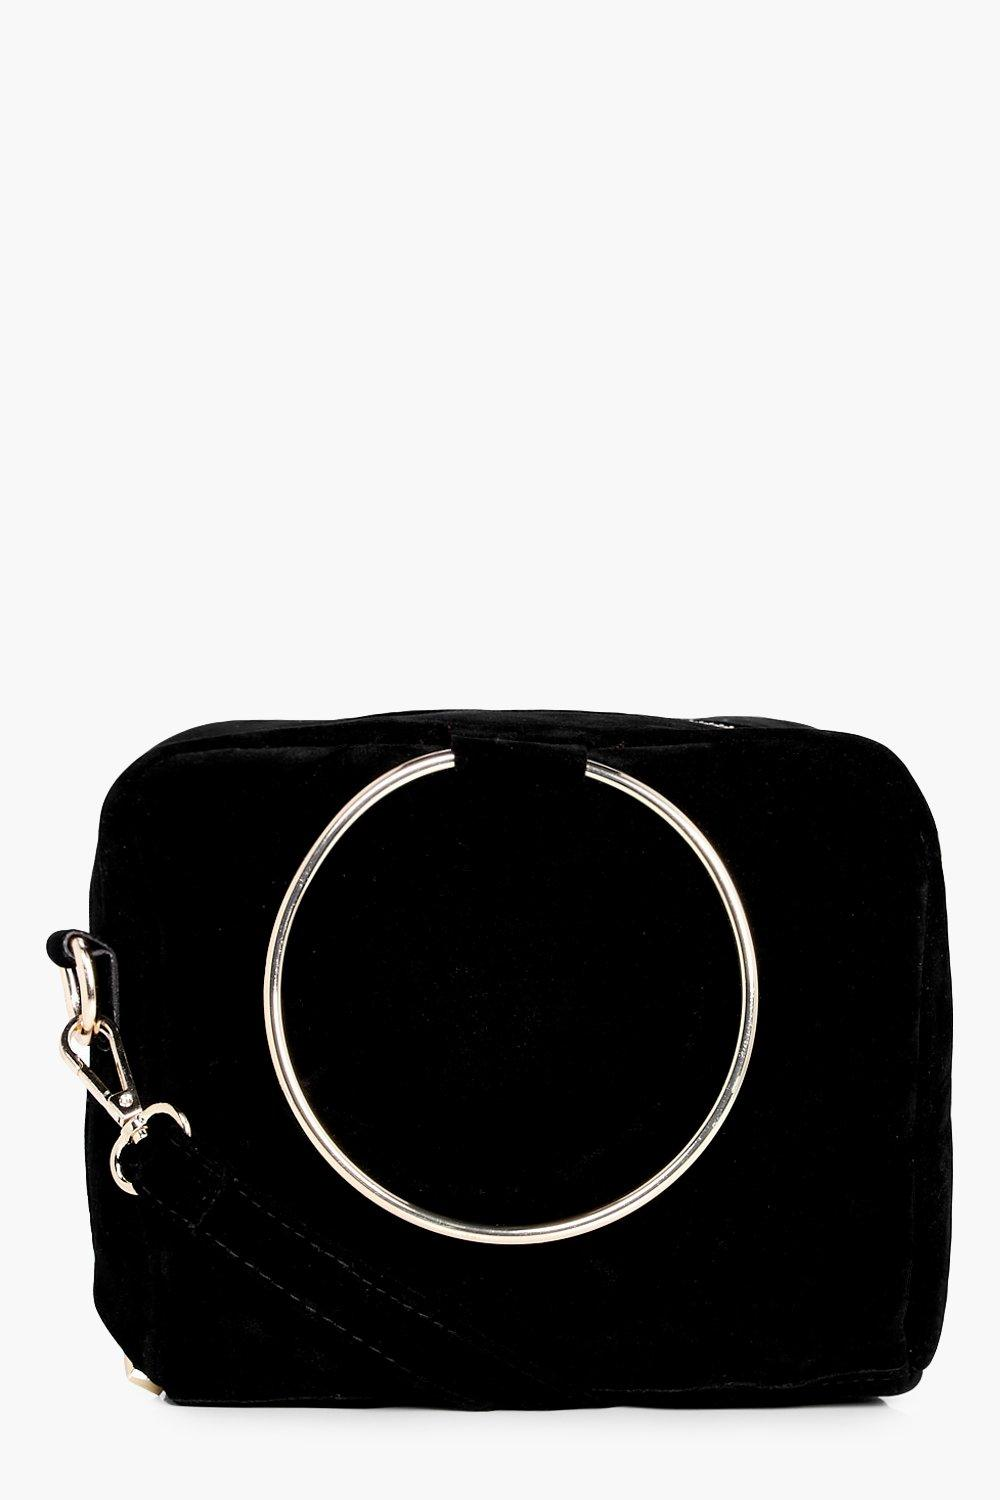 Loop Ring Detail Cross Body Bag - black - Frankie